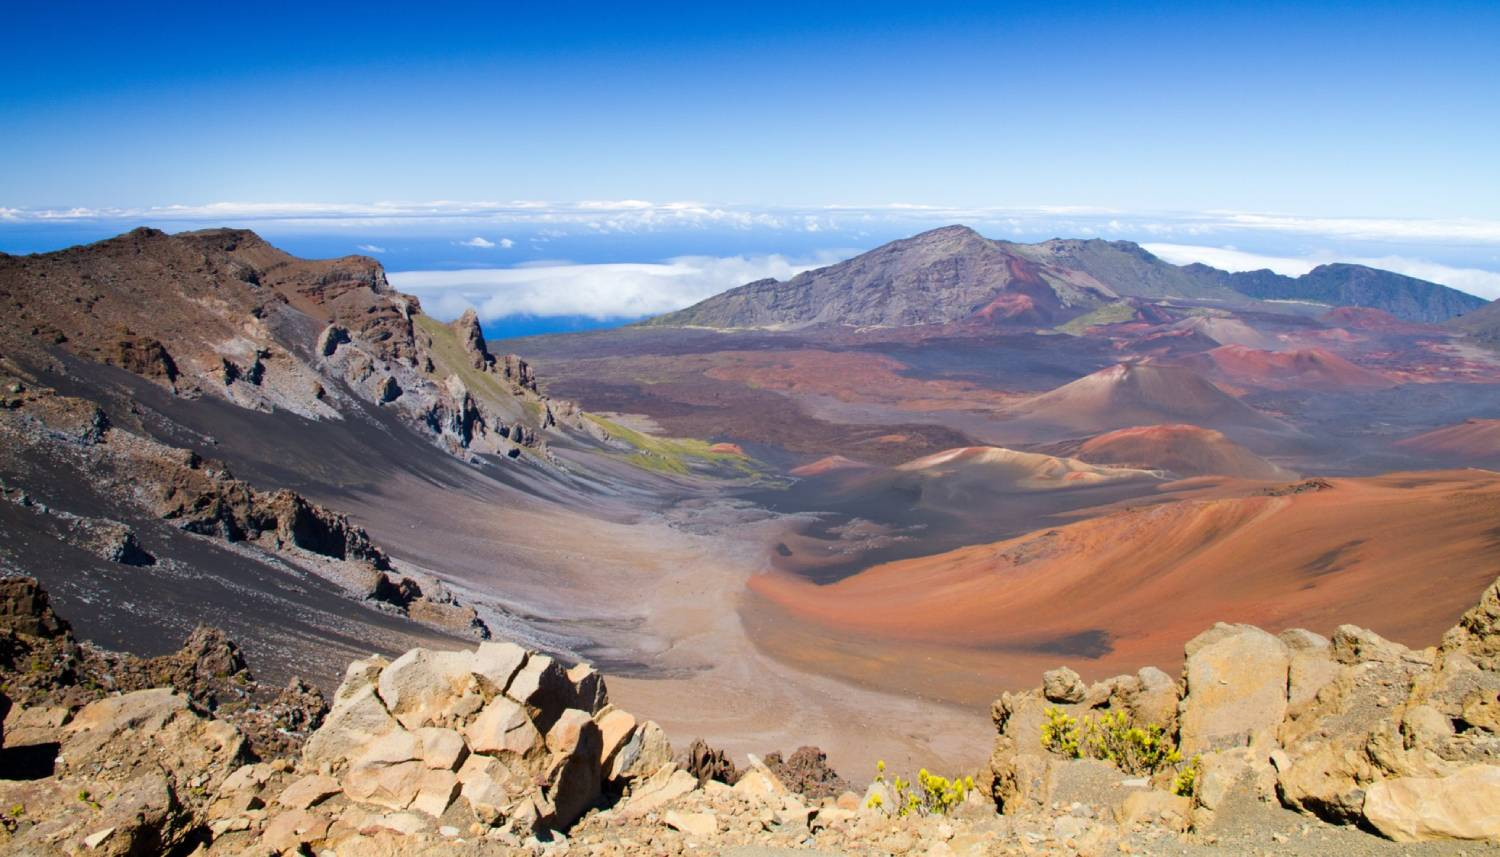 Haleakala Crater - Things To Do In Hawaii